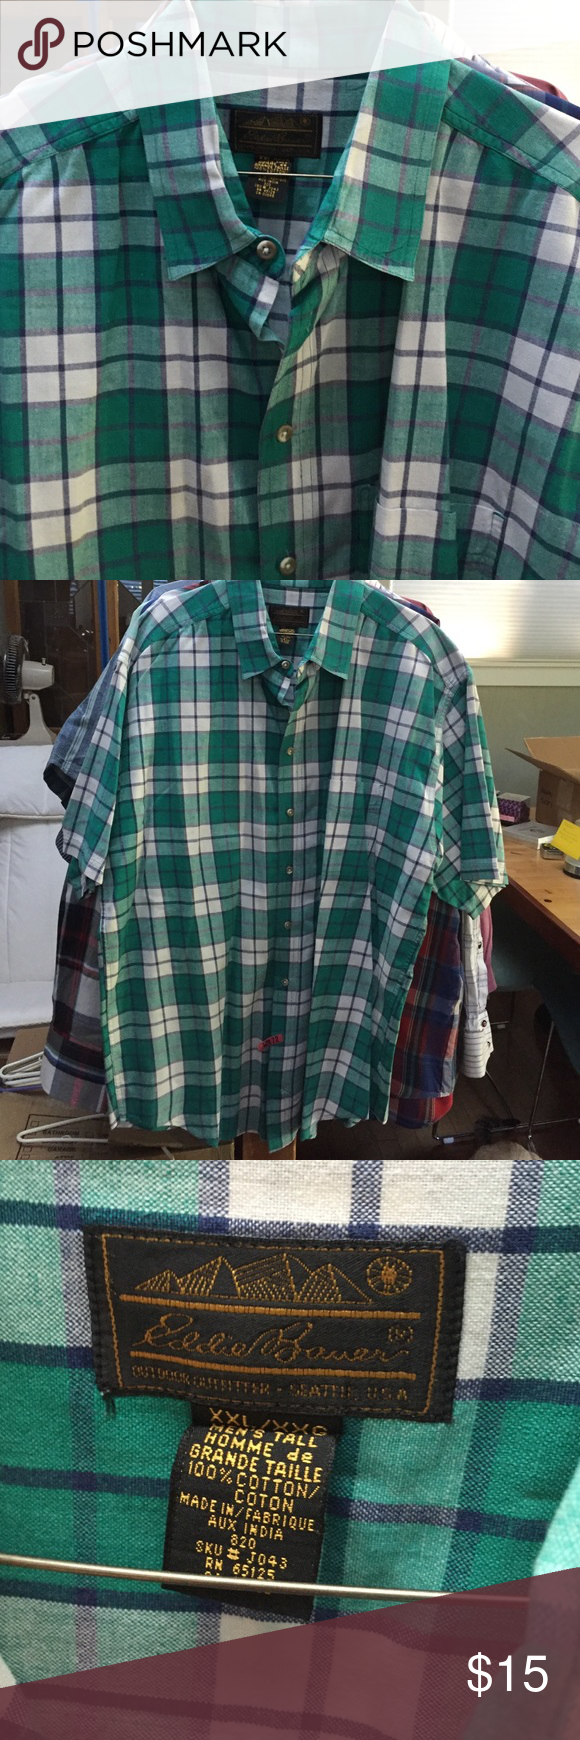 Men's Eddie Bauer Plaid SS Shirt 2XLT Men's tall. Hundred percent cotton. Colors are green and navy and white. Eddie Bauer Shirts Casual Button Down Shirts